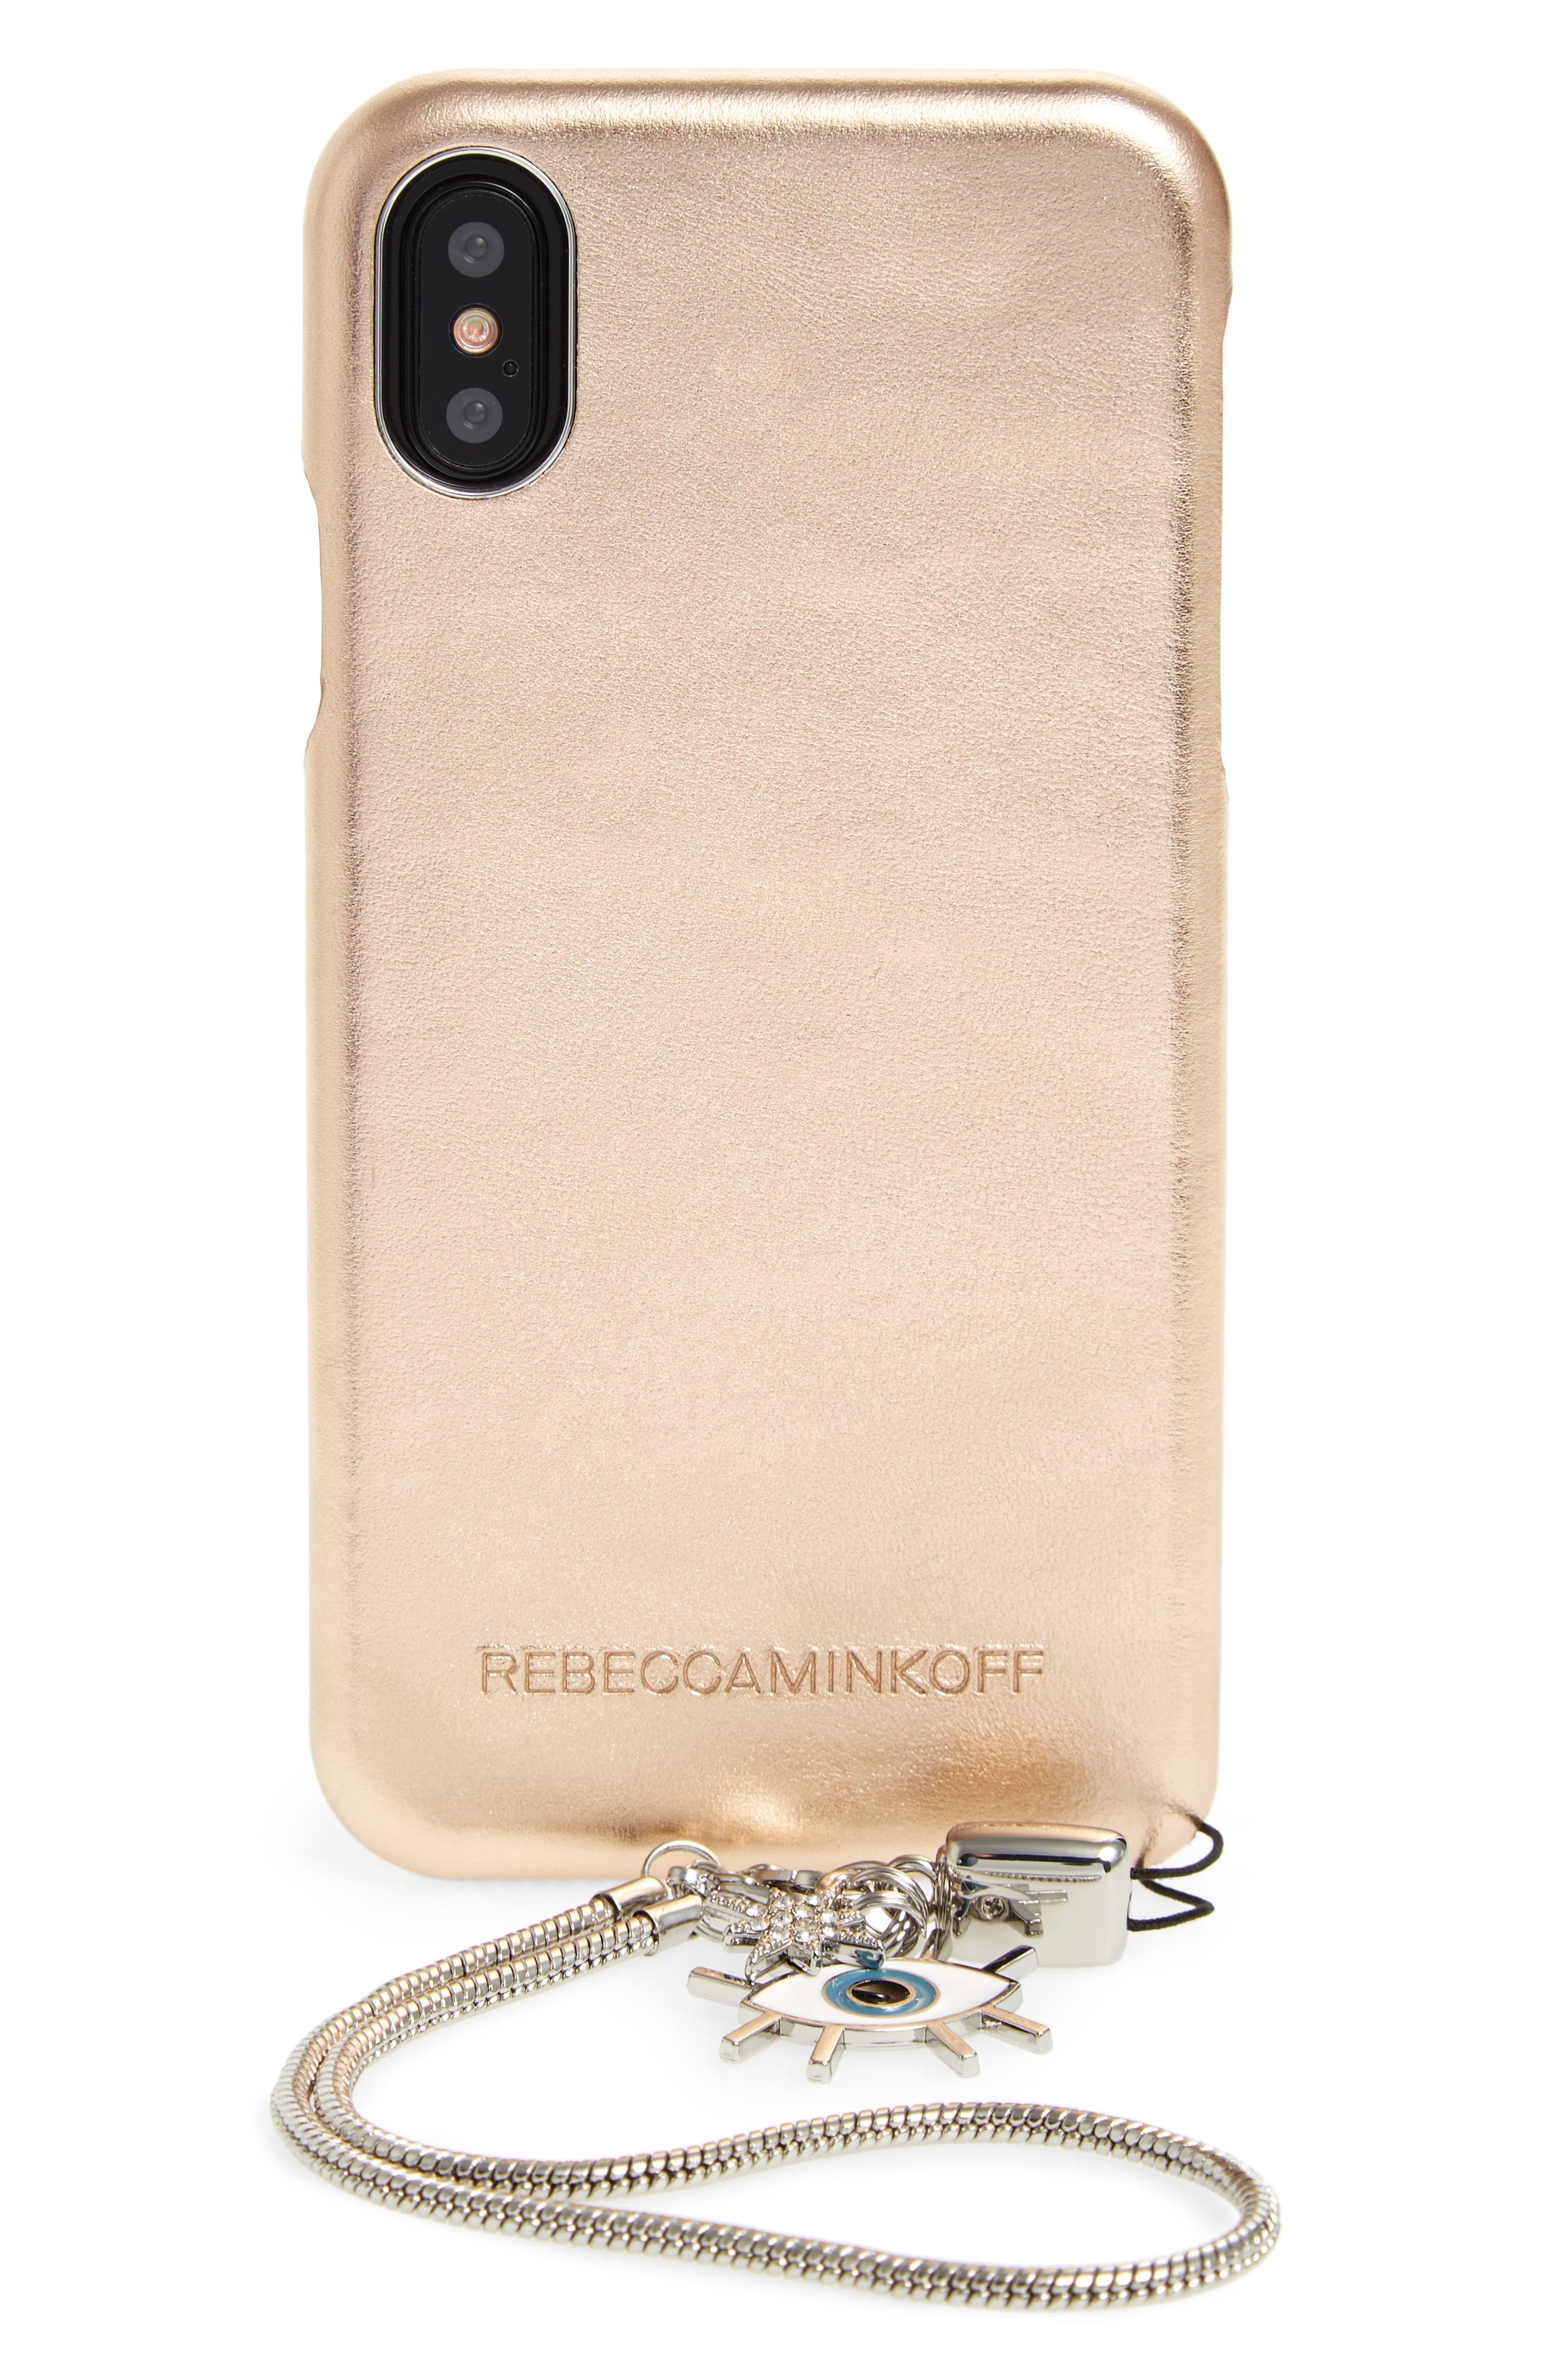 Rebecca Minkoff Metallic Leather iPhone X Wristlet Case with Charms